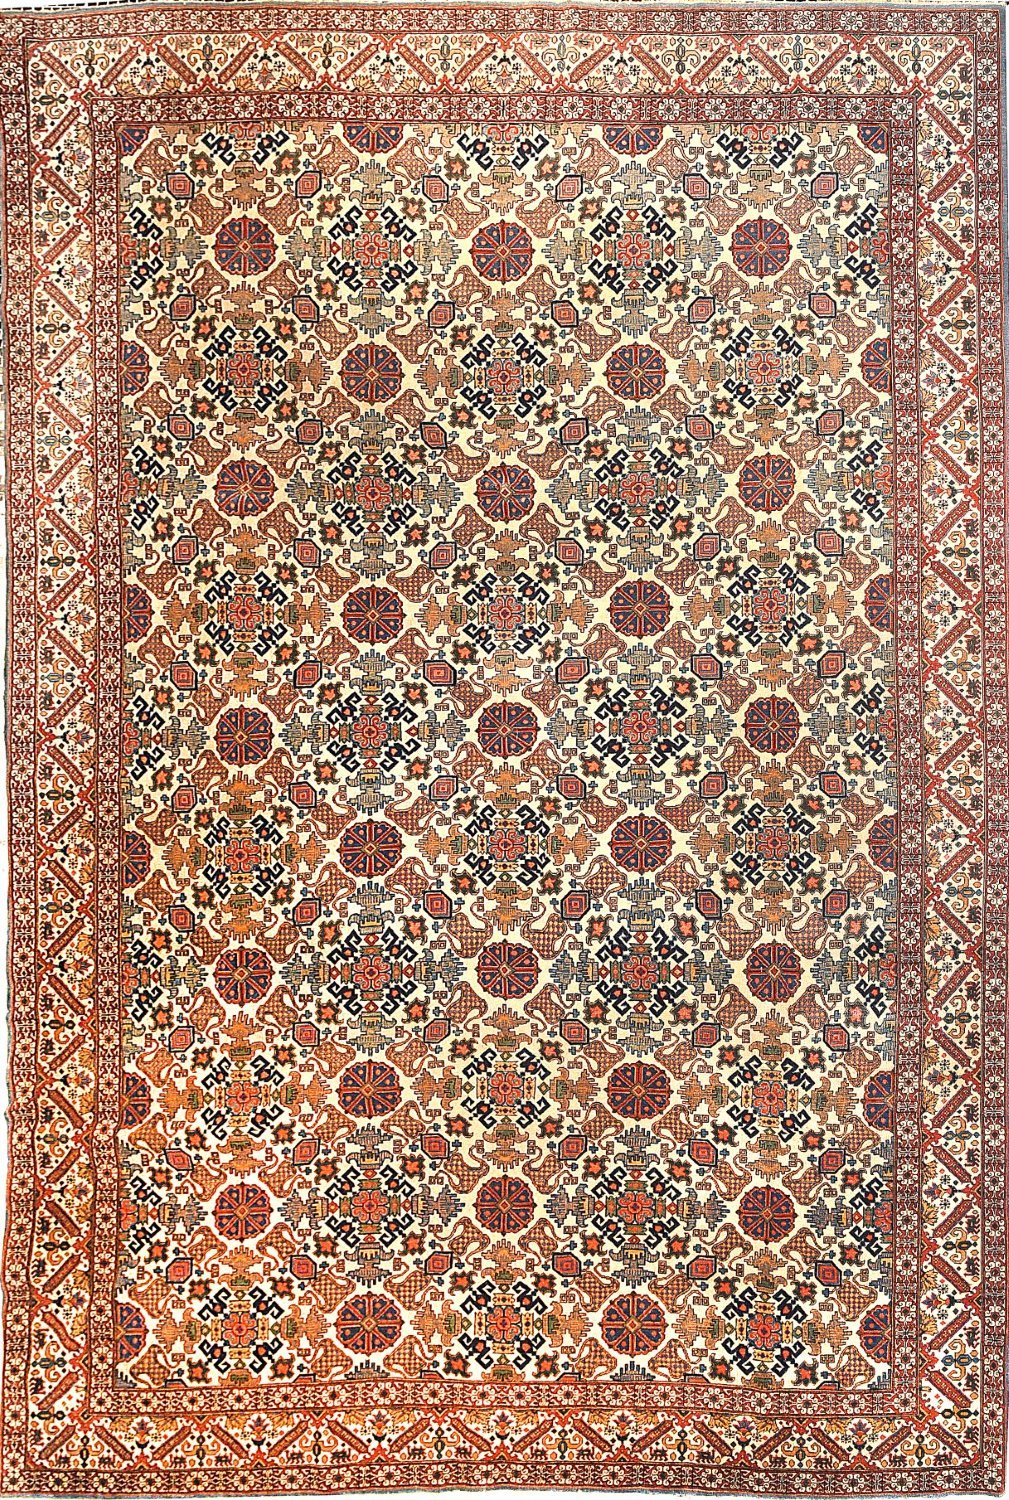 Antique Persian Rug Tehran